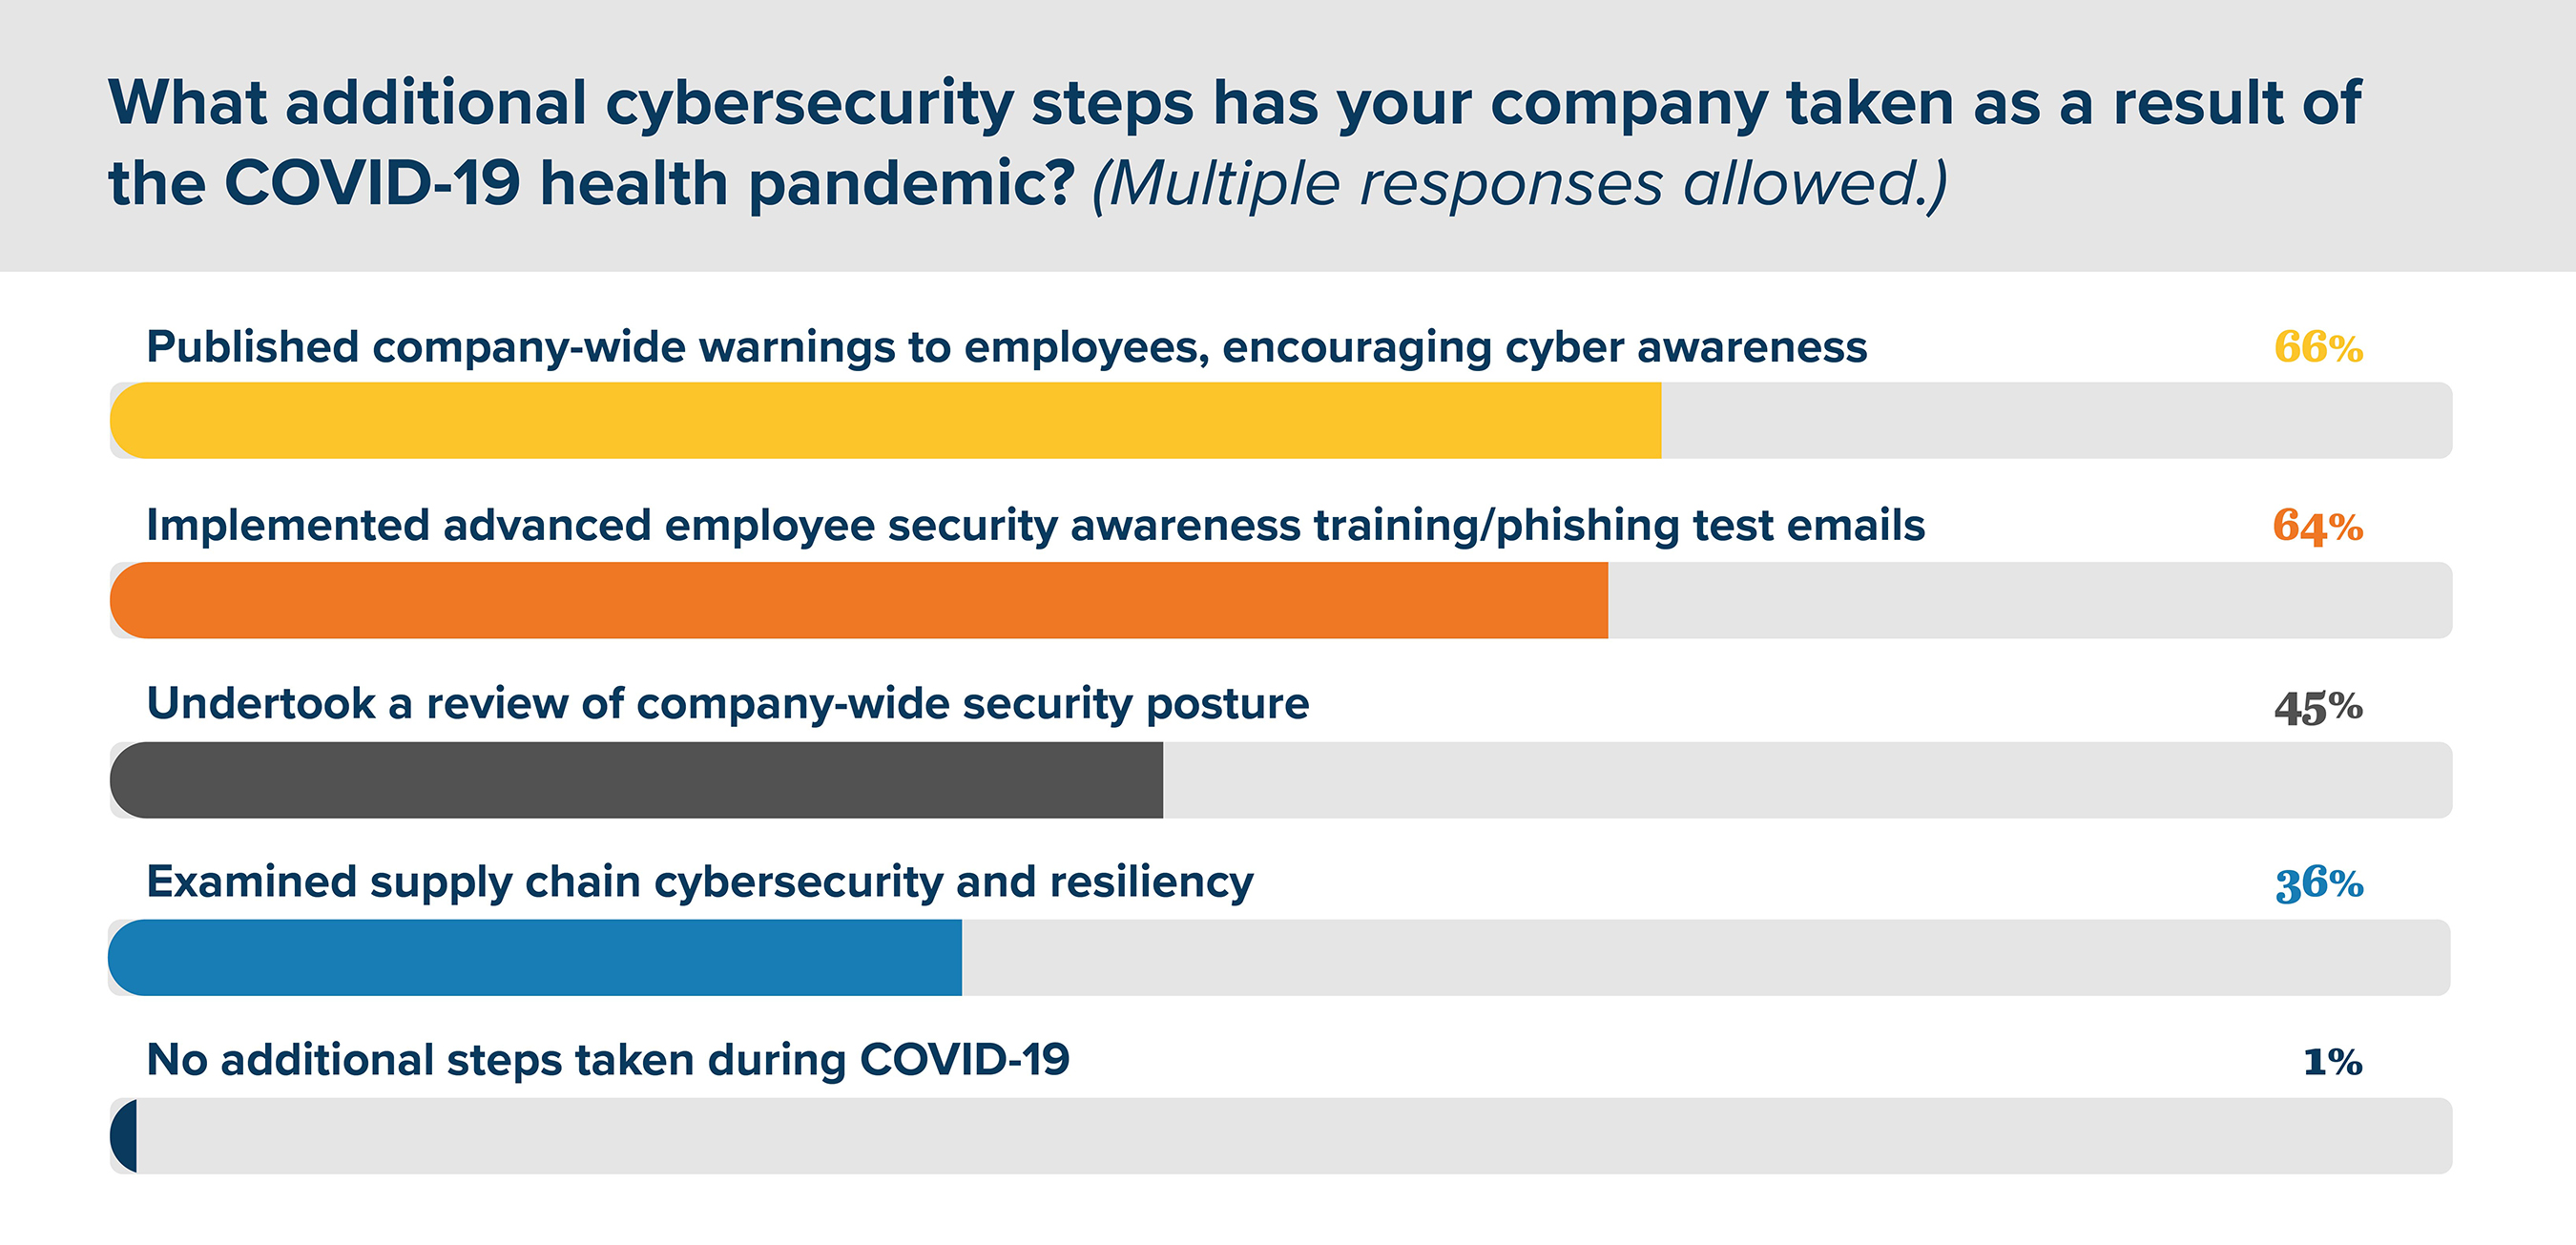 Graphic demonstrating additional cybersecurity steps taken by midstream oil and gas companies during COVID-19